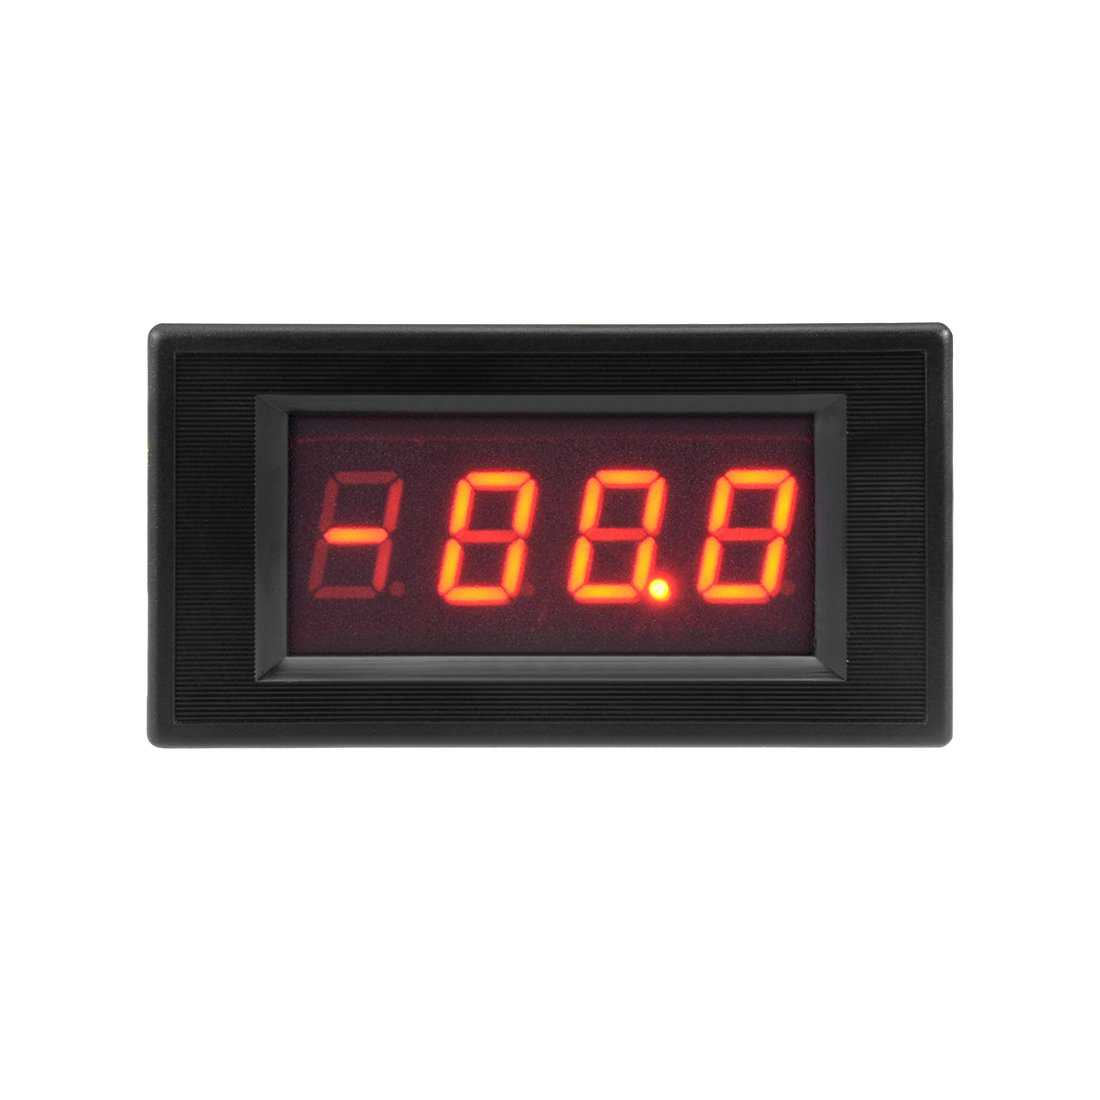 uxcell/® 85C1 Analog Current Panel Meter DC 5mA Ammeter for Circuit Testing Ampere Tester Gauge 1 PCS